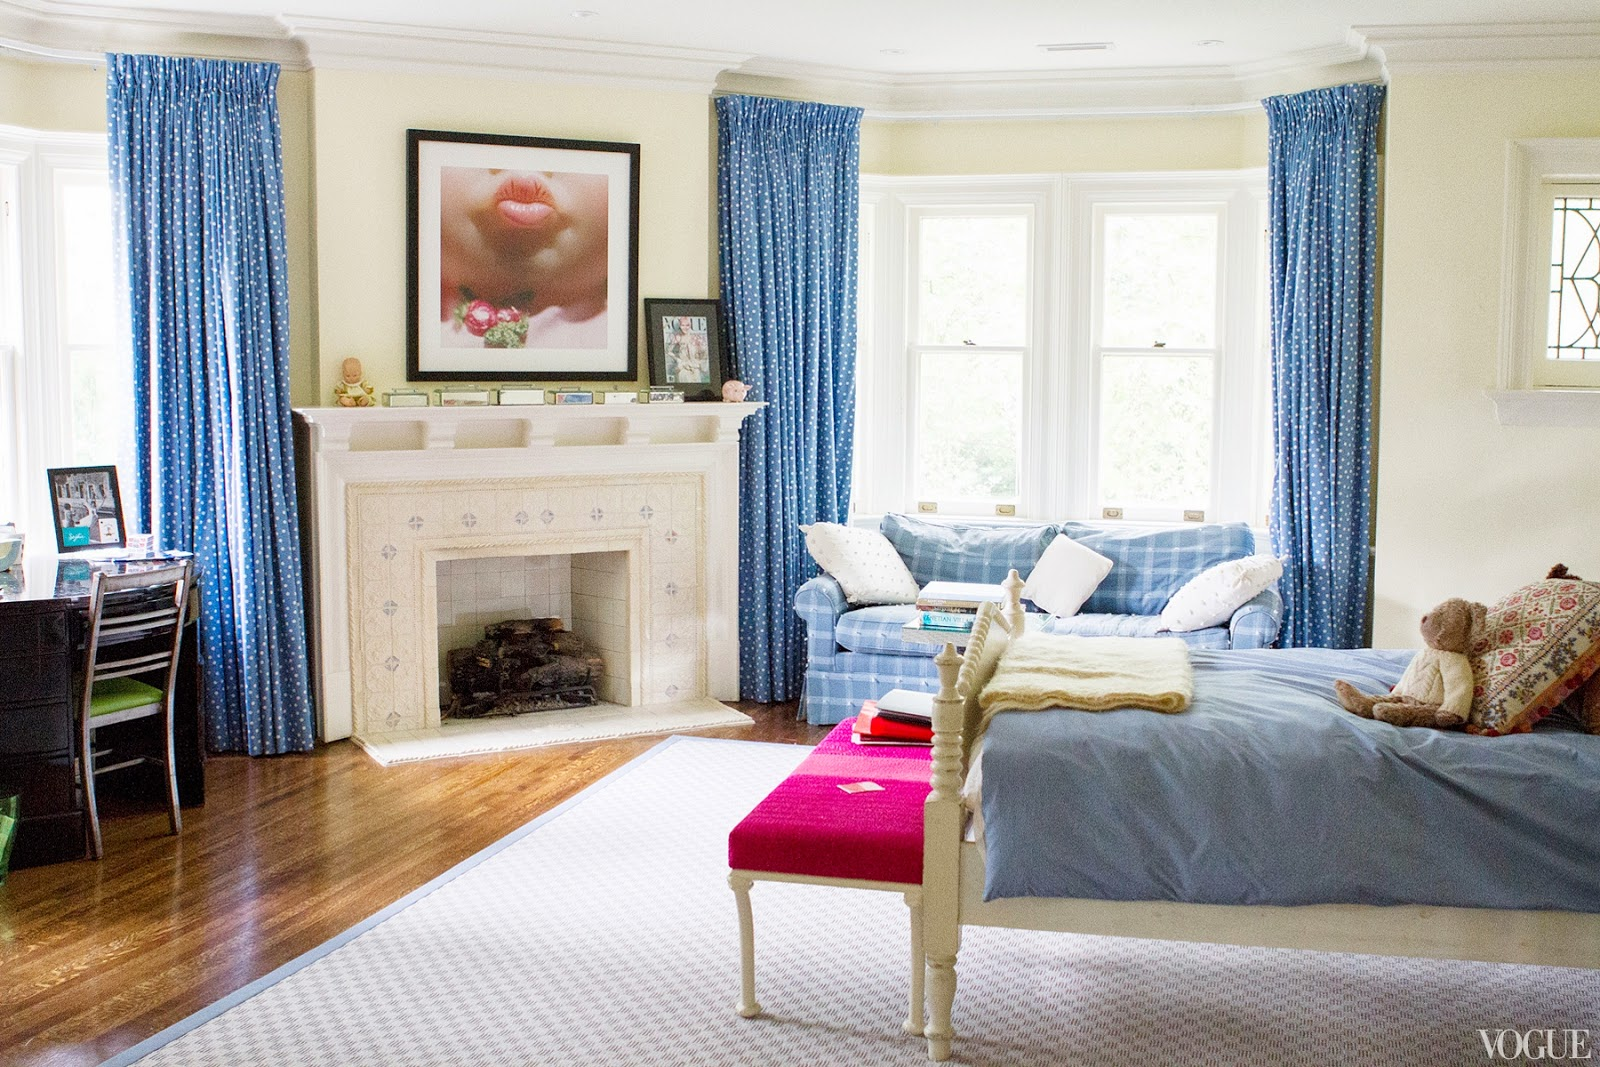 Amazing photo of Vogue.com contributor Sophie Young's blue bedroom in her childhood  with #6F3A28 color and 1600x1067 pixels